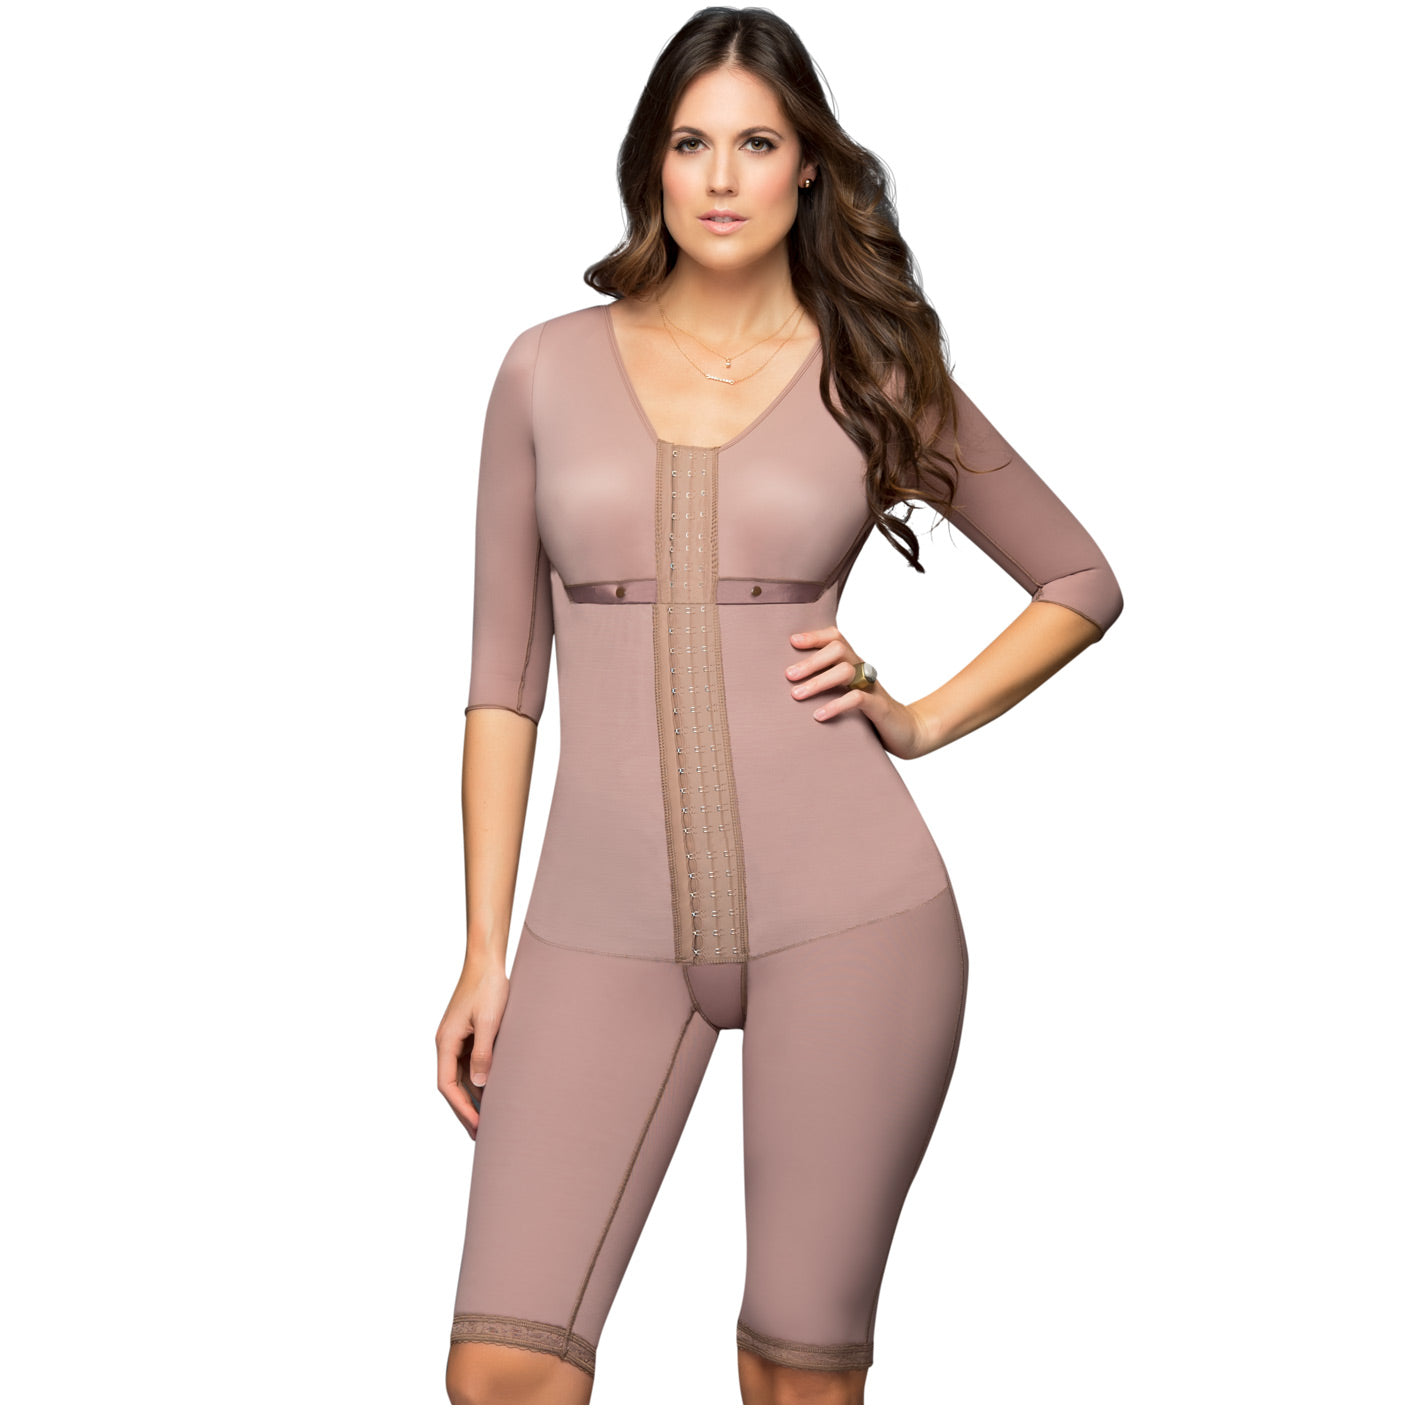 Fajas DPrada 103 Full Body Shaper w Bra and Sleeves Fajas Colombianas